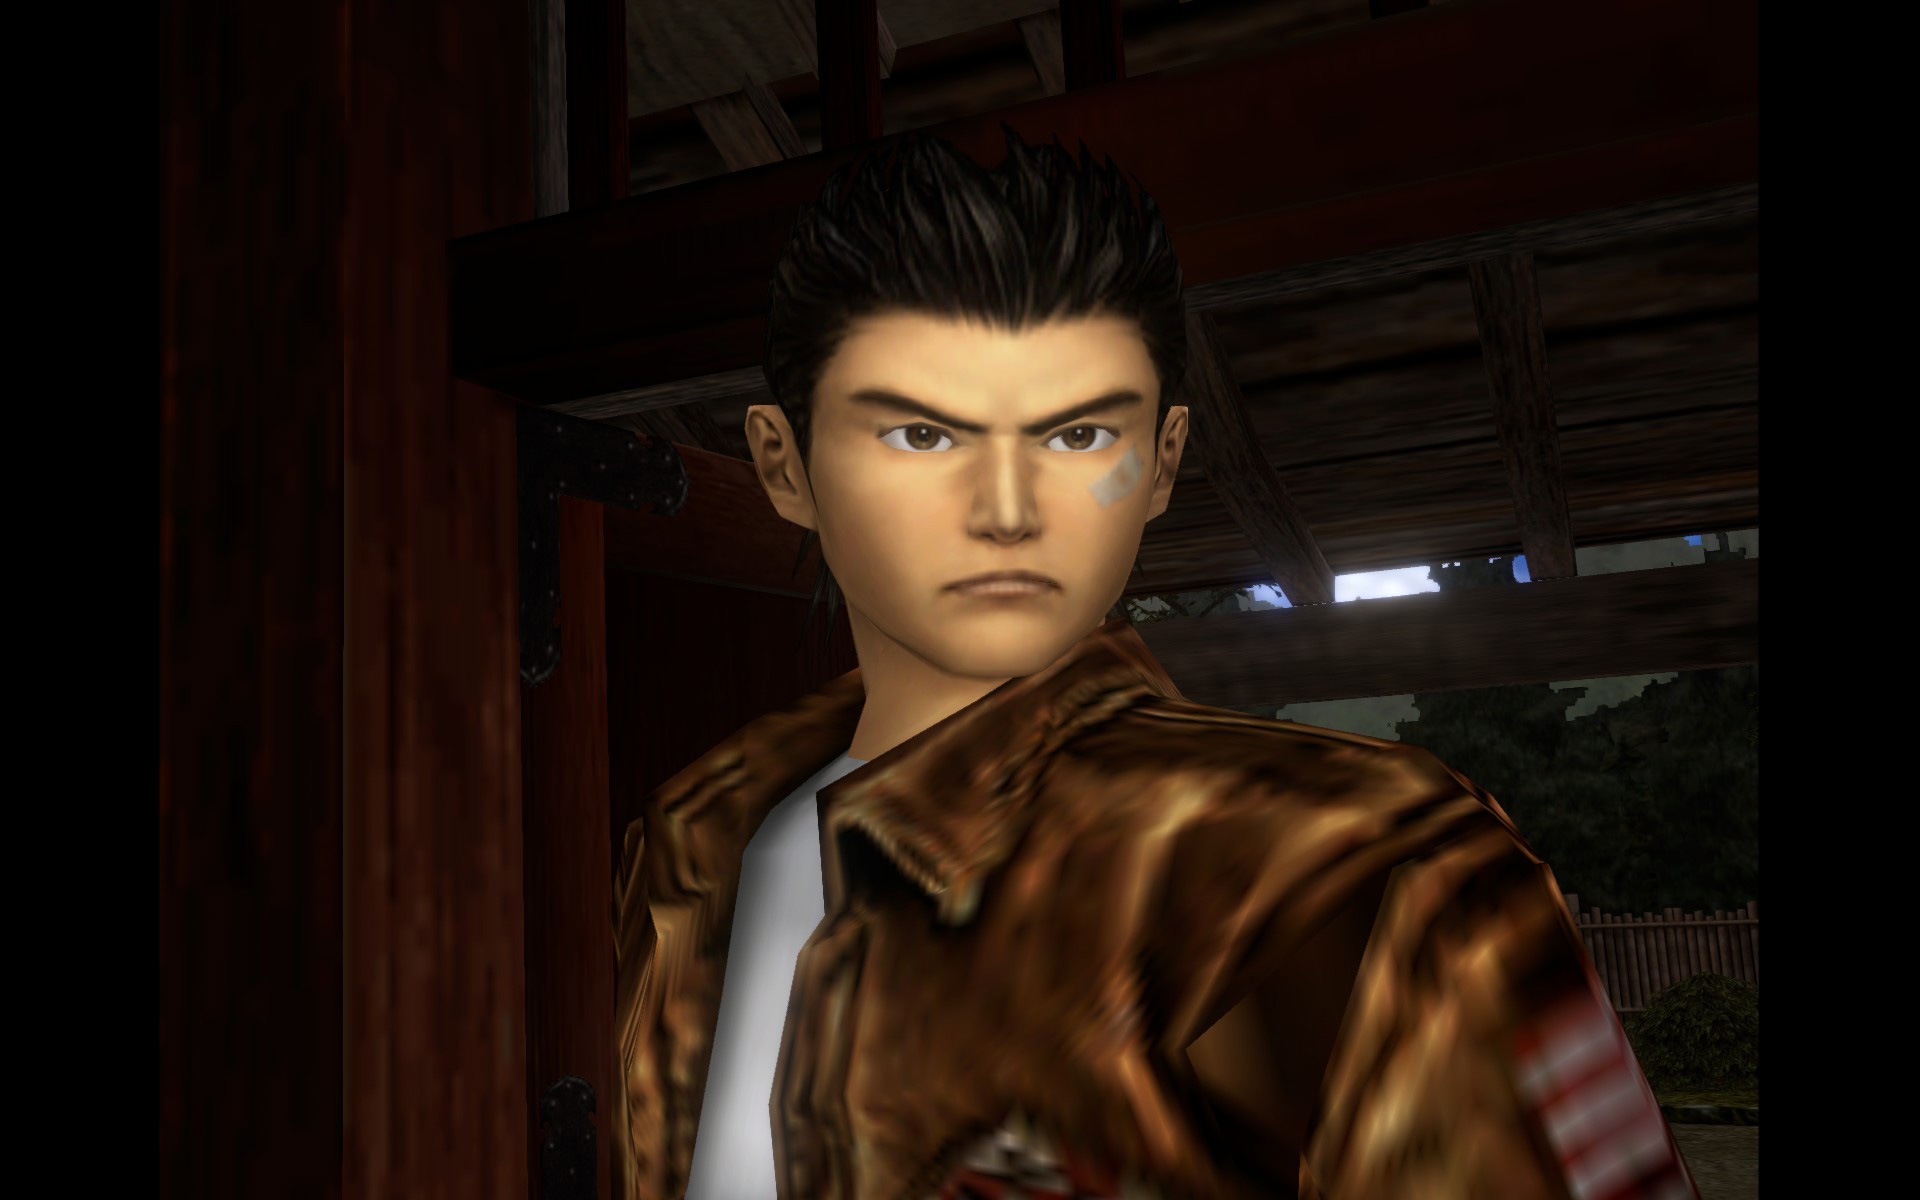 Ryo from Shenmue